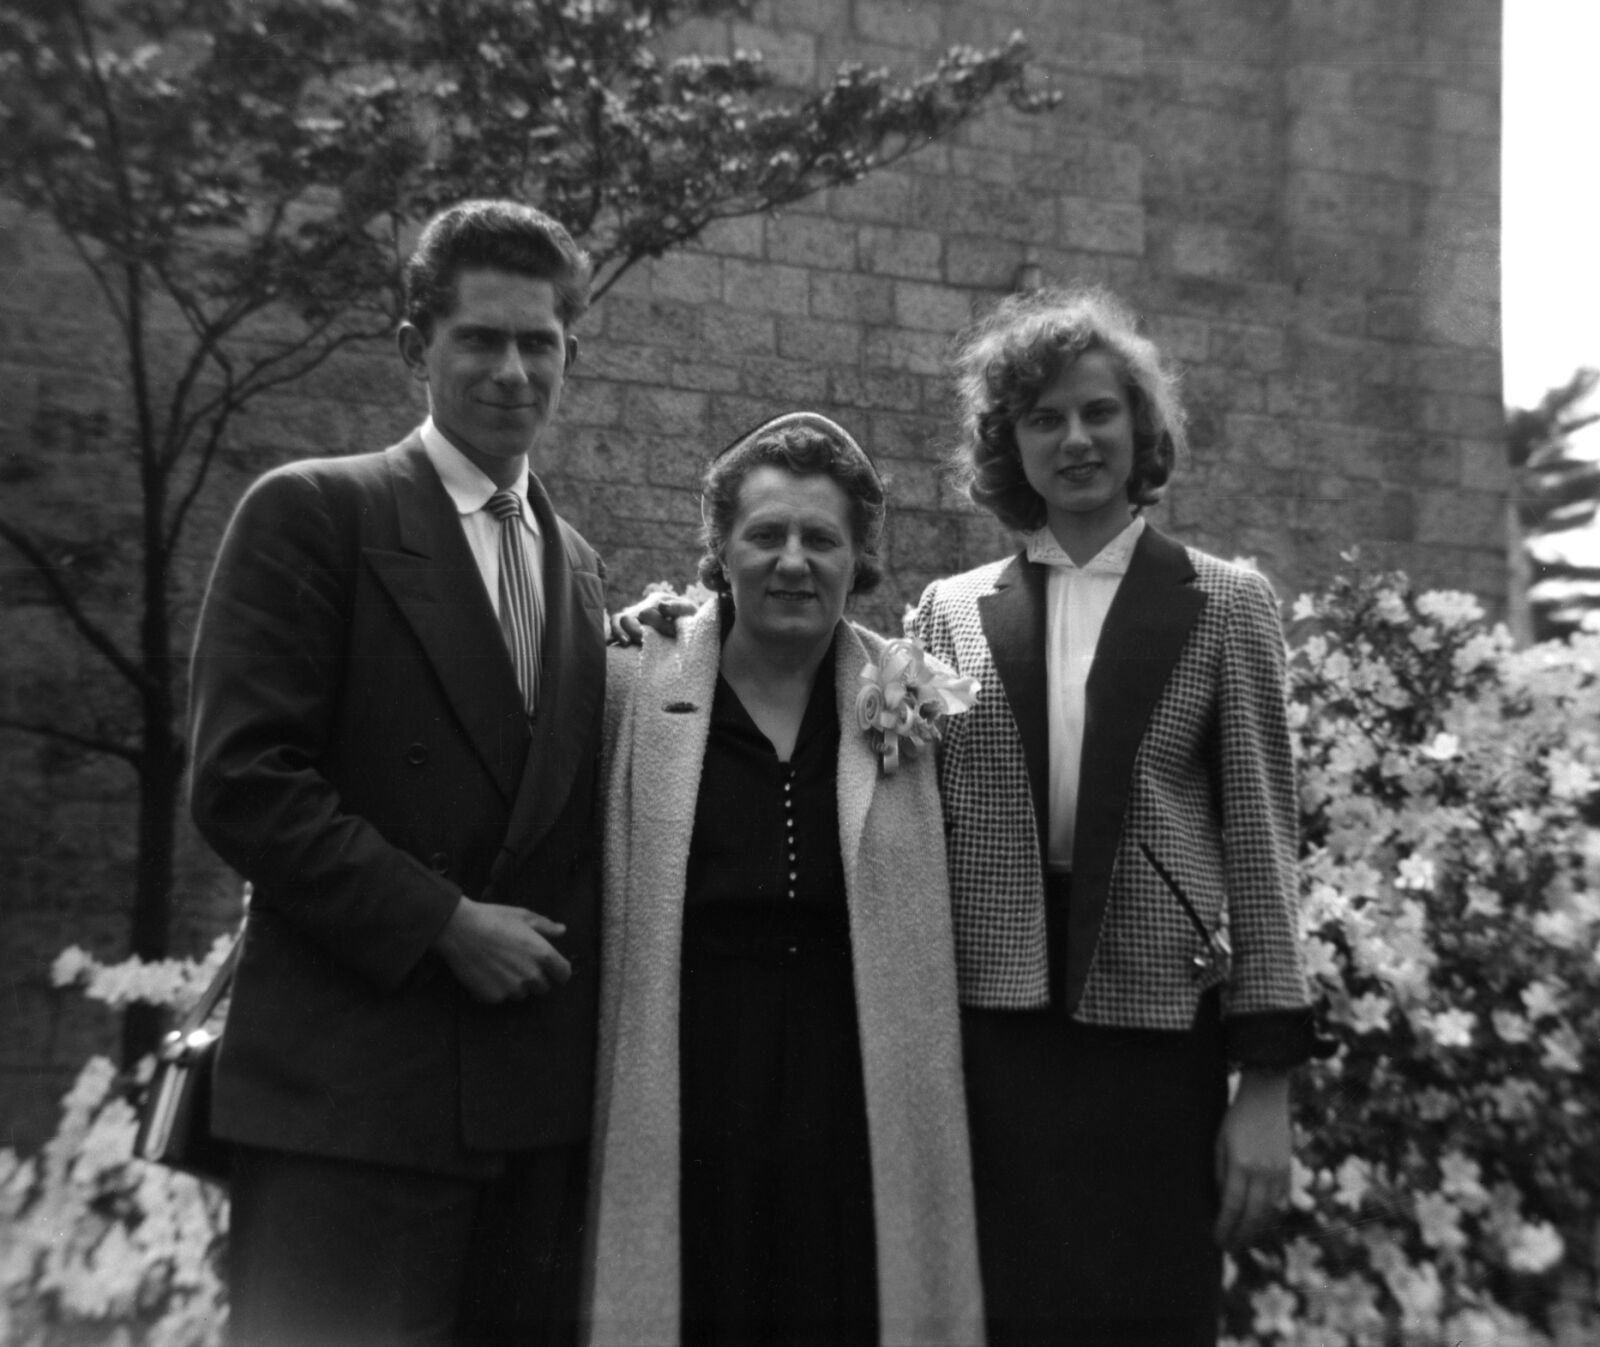 Eddie, Olga, and Grace Kmeta circa 1951